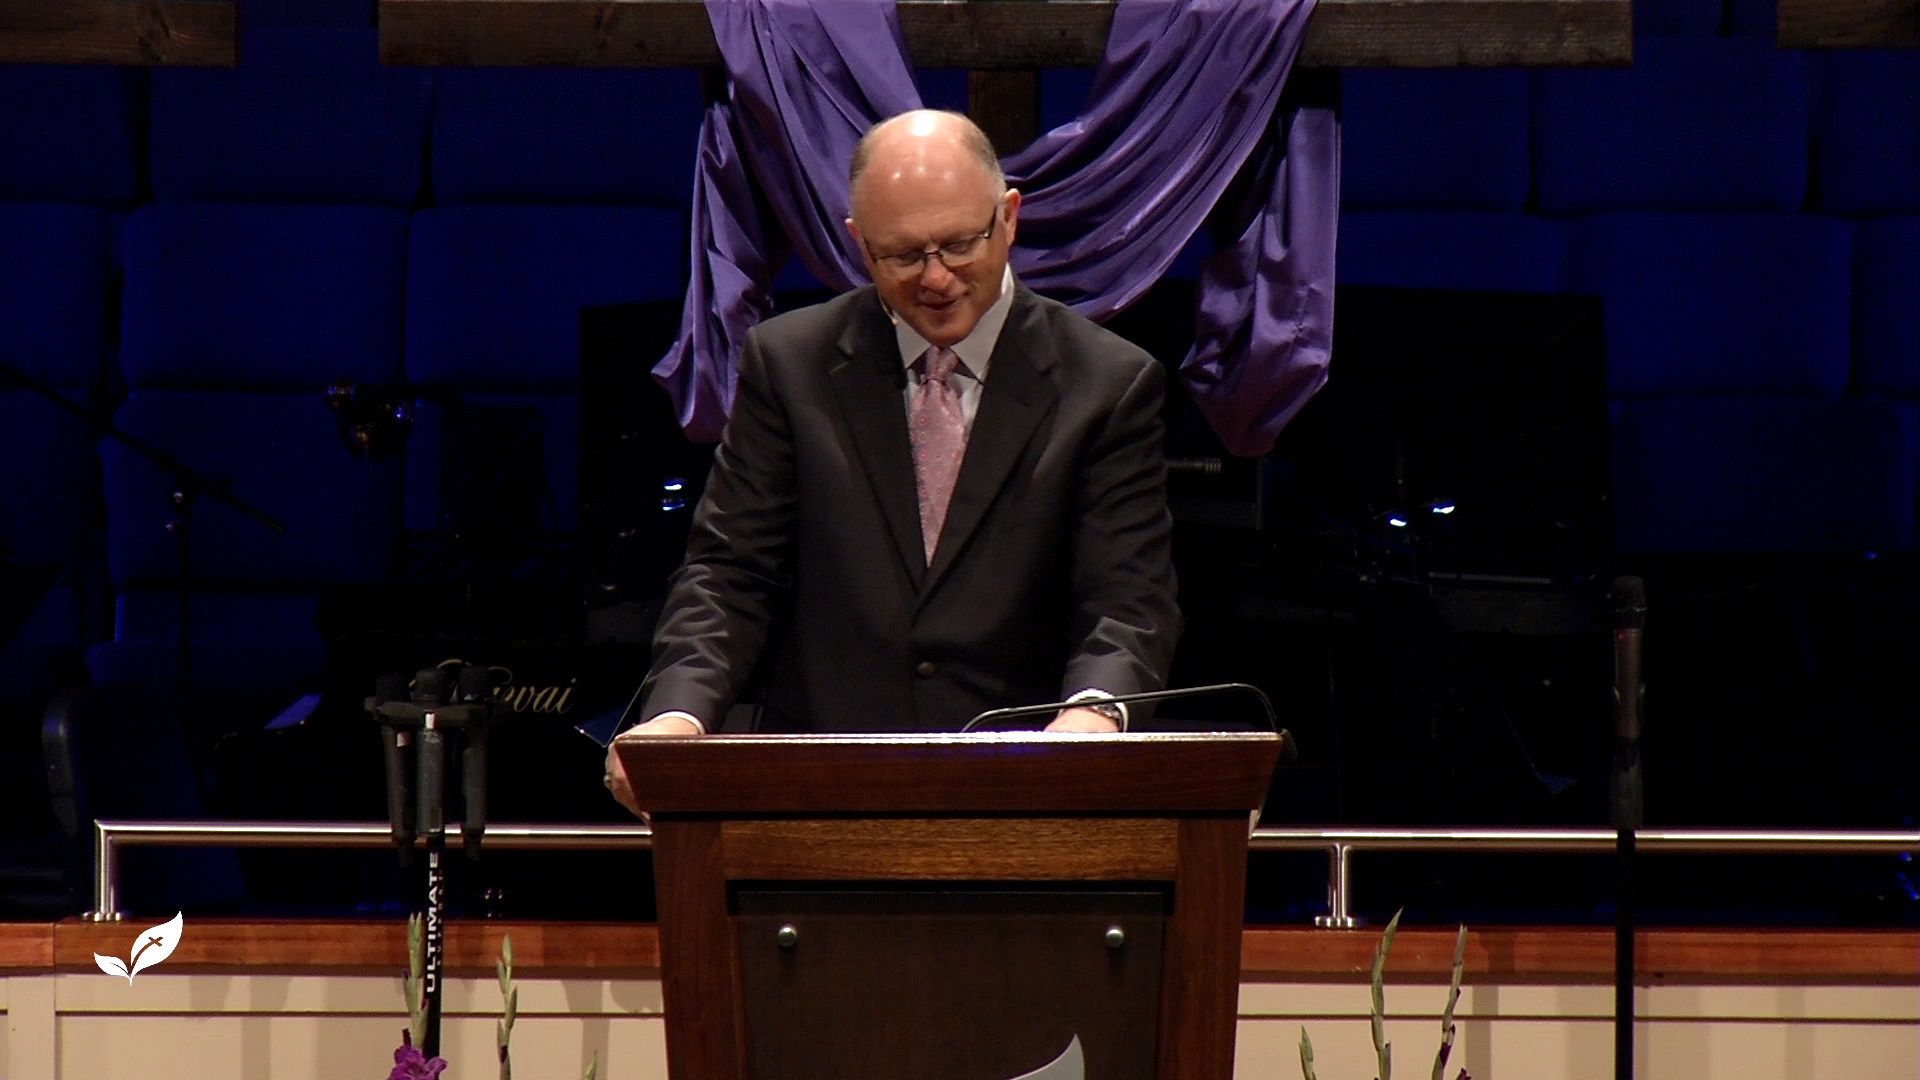 Pastor Paul Chappell: Hope Through Atonement